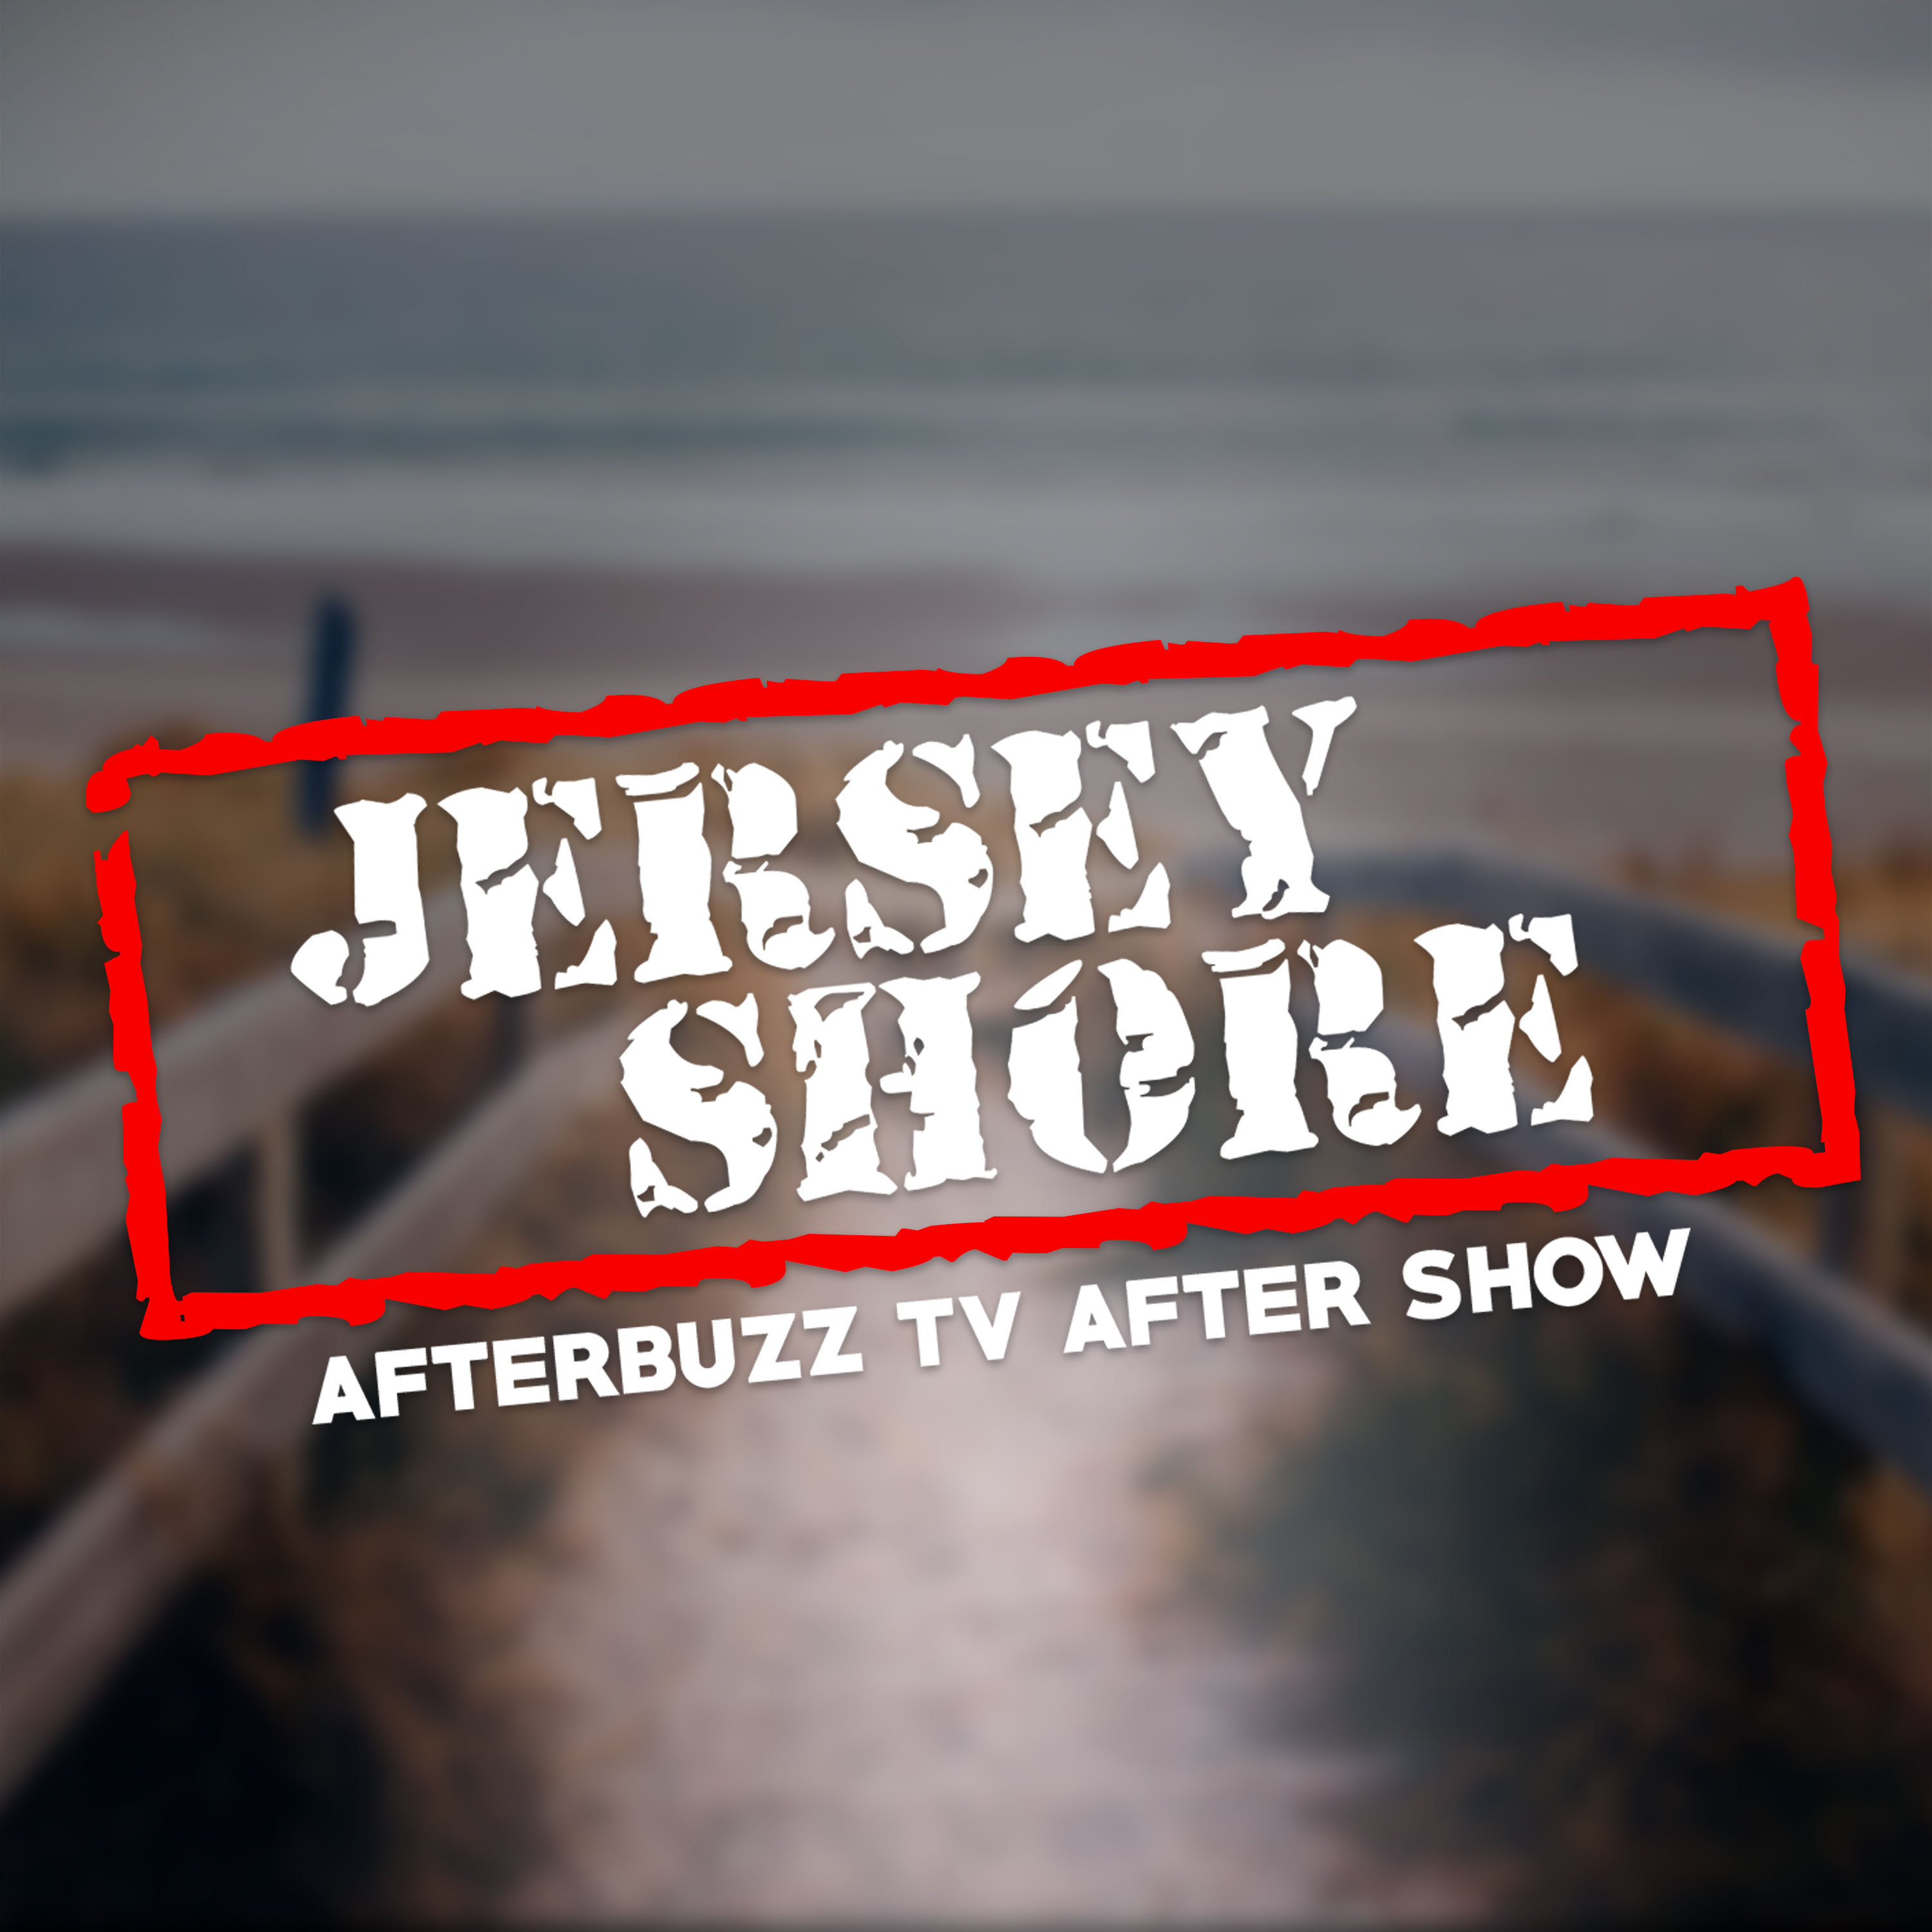 PodcastOne: Jersey Shore After Show